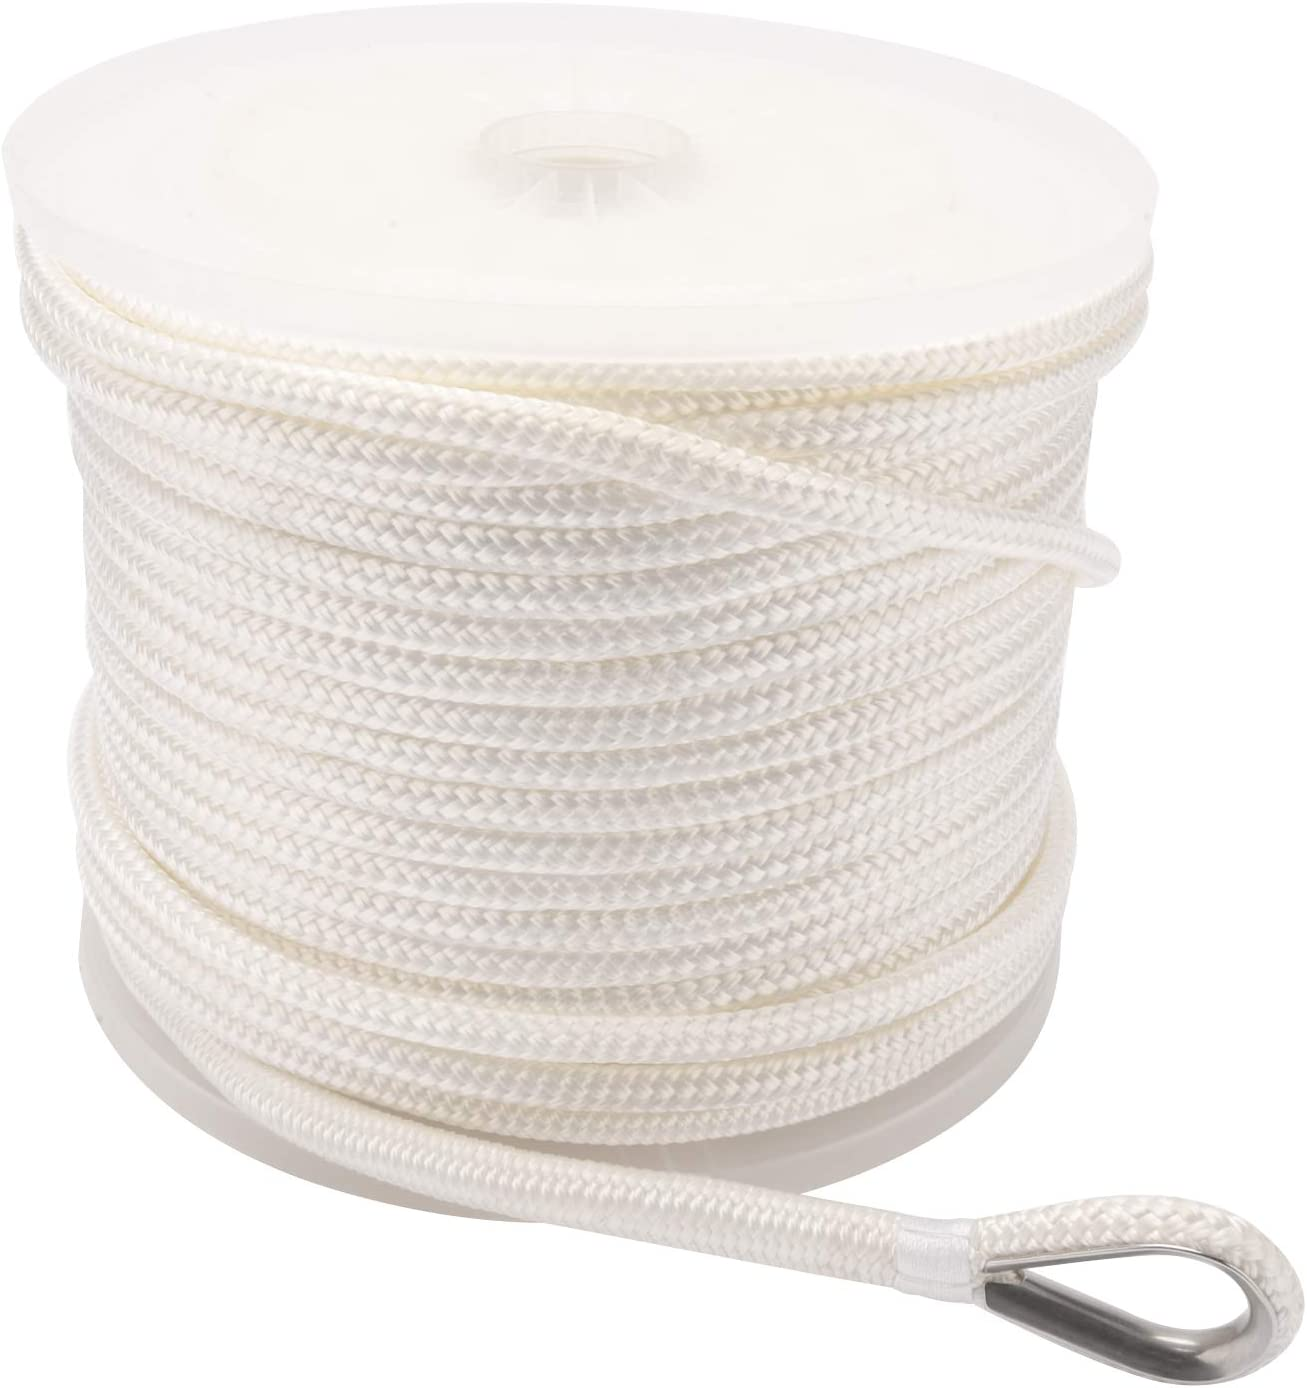 NovelBee 3 8 Inch X 600 Feet Outlet SALE Max 50% OFF Line Double with Nylon Anchor Braid